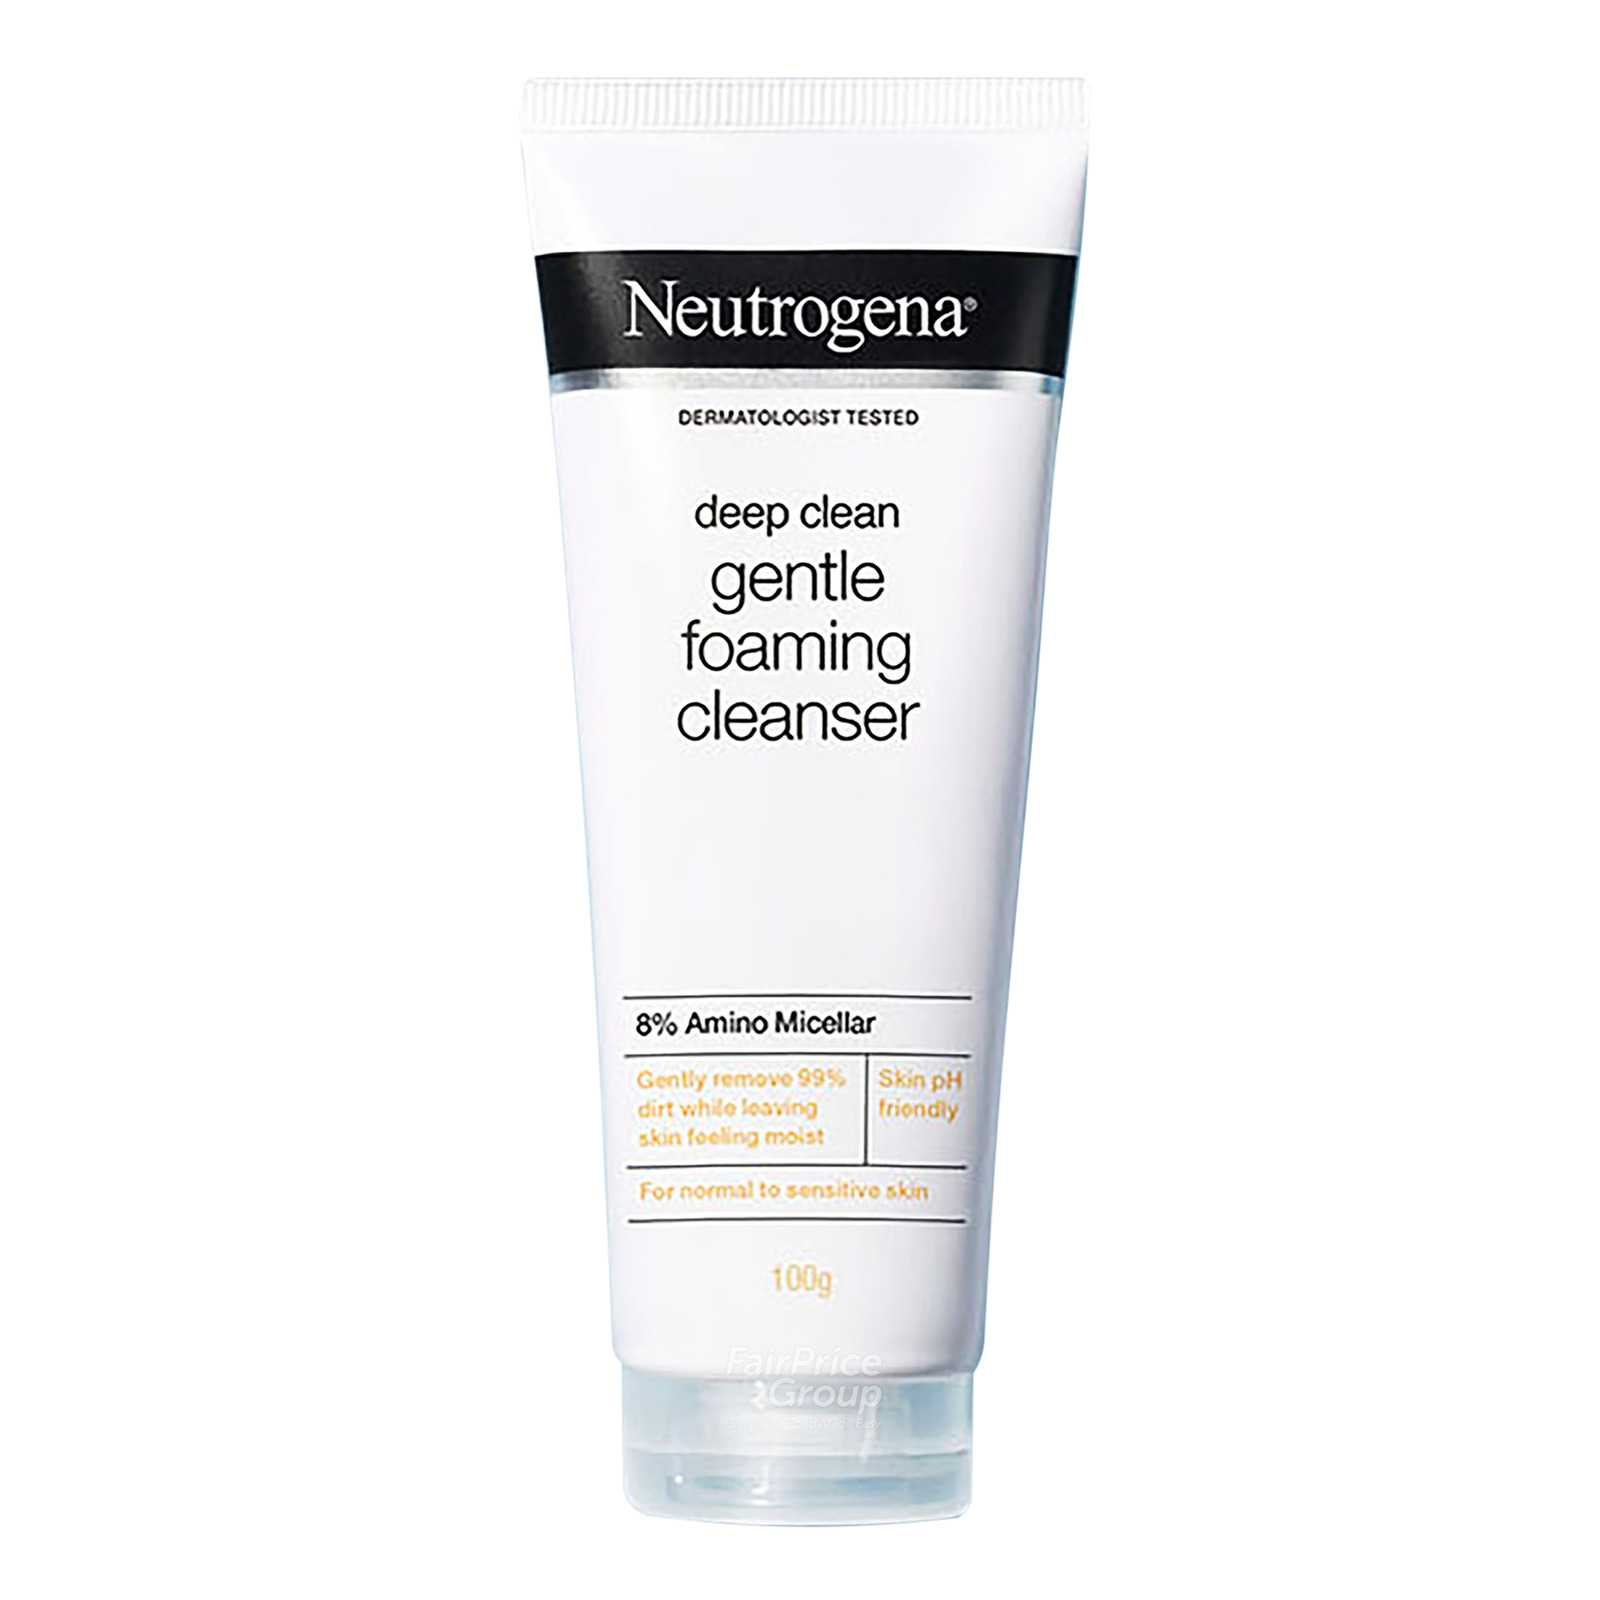 NEUTROGENA  deep clean hydrating foaming cleanser 100g